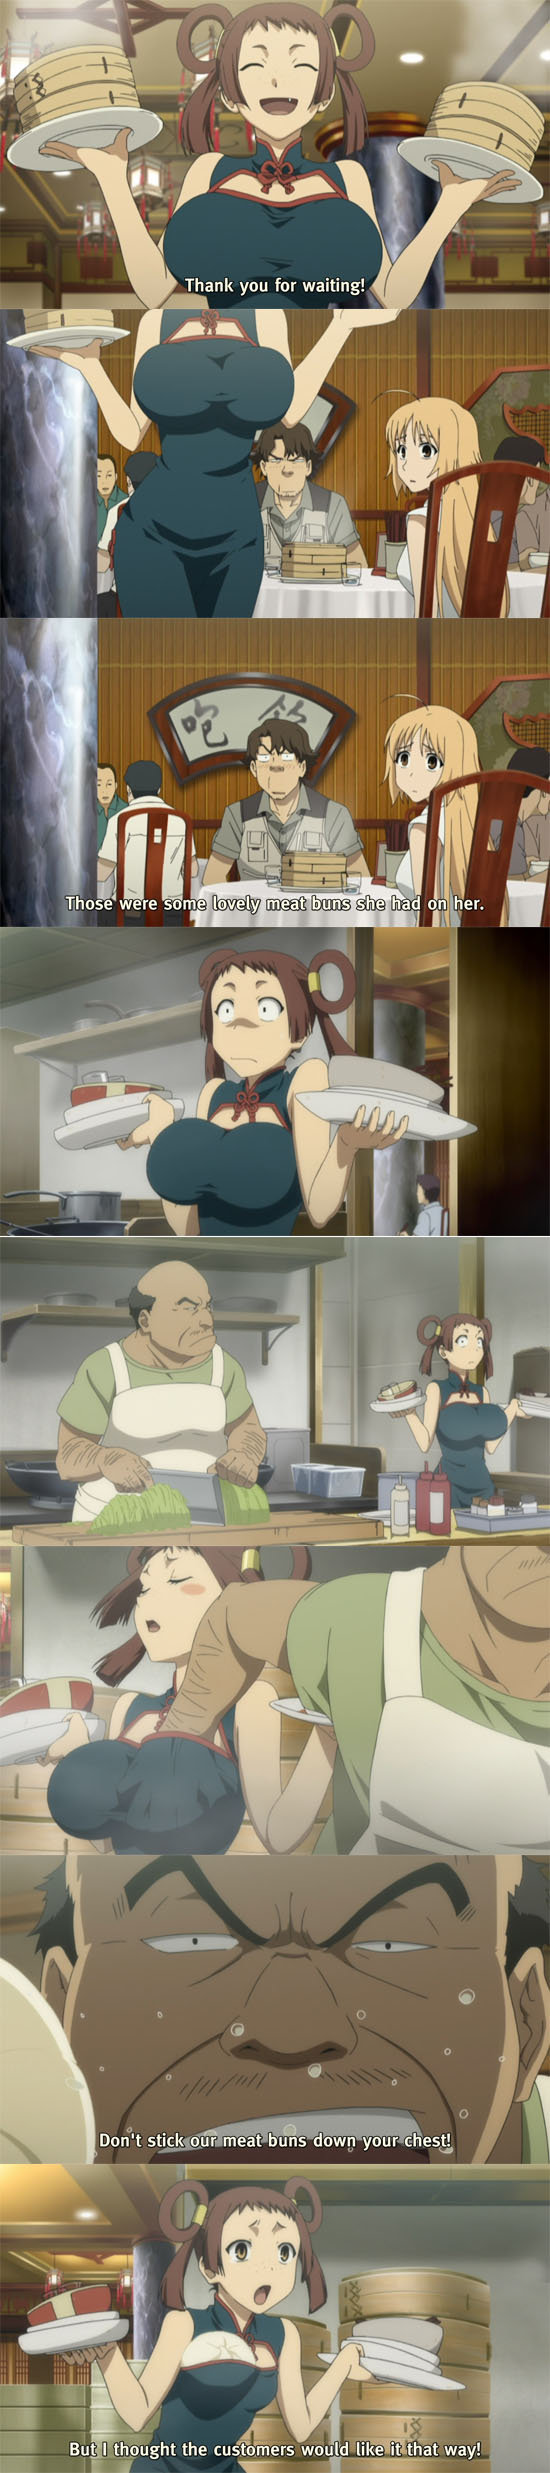 Meat Buns. Meat Buns.. Giving Pettanko BOINGS since ??? Source: Canaan.. Reminded me of this